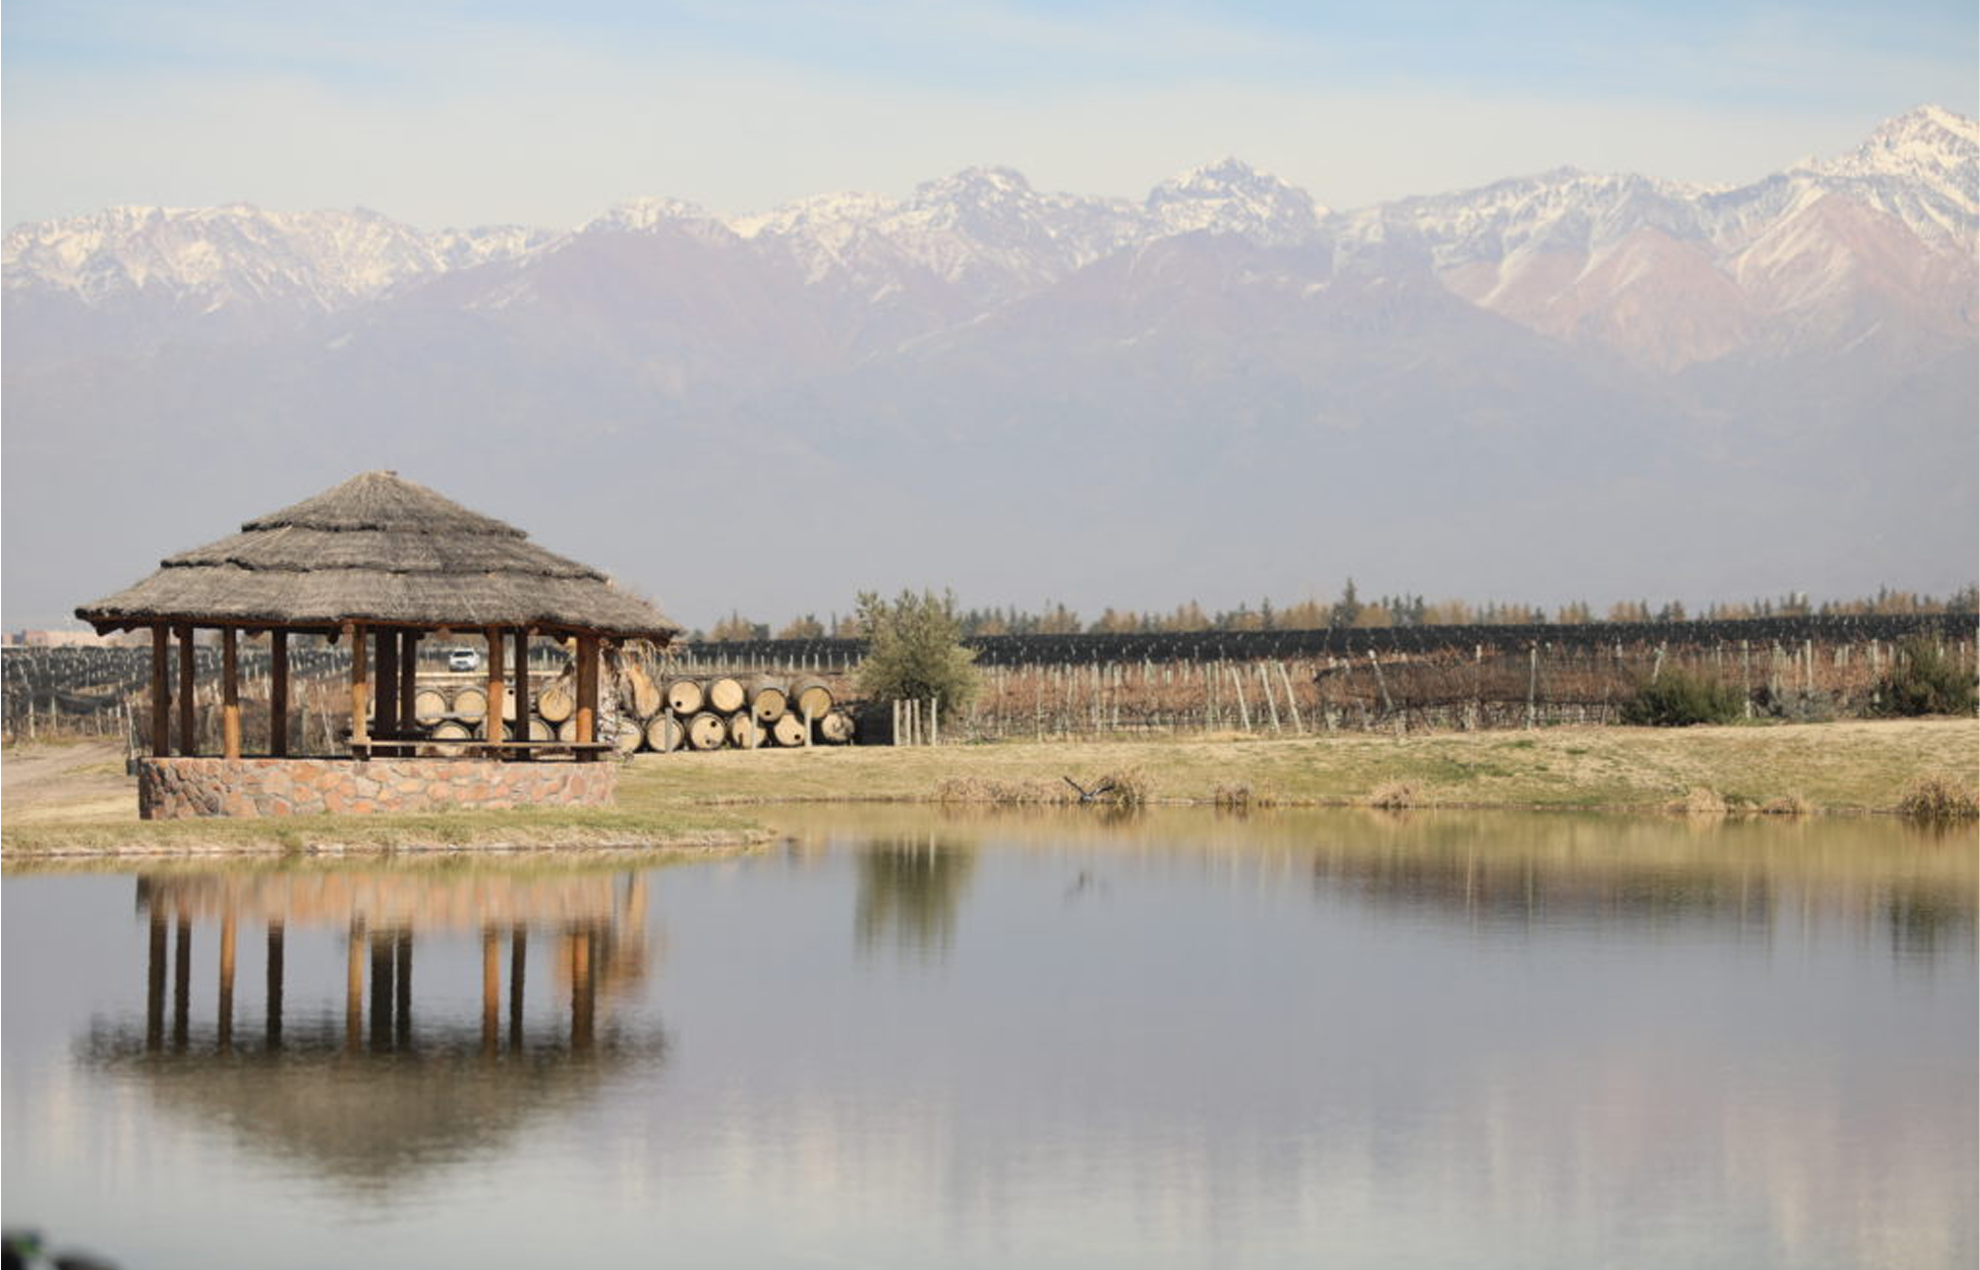 A straw hut in a pond with a scenic view of a large mountain range.